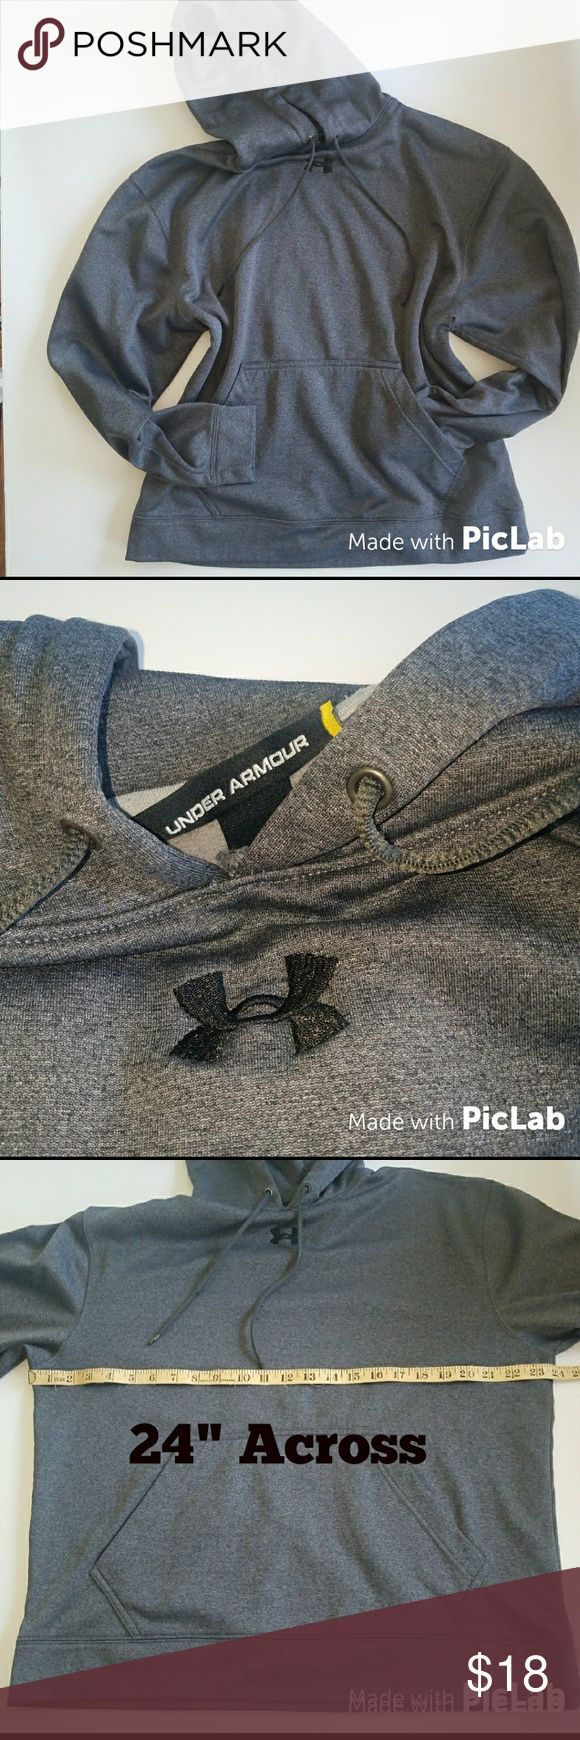 Under Armour Hoodie Gray Under Armour pullover hooded sweatshirt with kangaroo pouch in the front. It id sized Medium loose. I feel this can be with womens or mens because of the neutral gray color. 100% Polyester  NO TRADES ***NO PAYPAL  SMOKE FREE & PET FREE HOME Under Armour Tops Sweatshirts & Hoodies